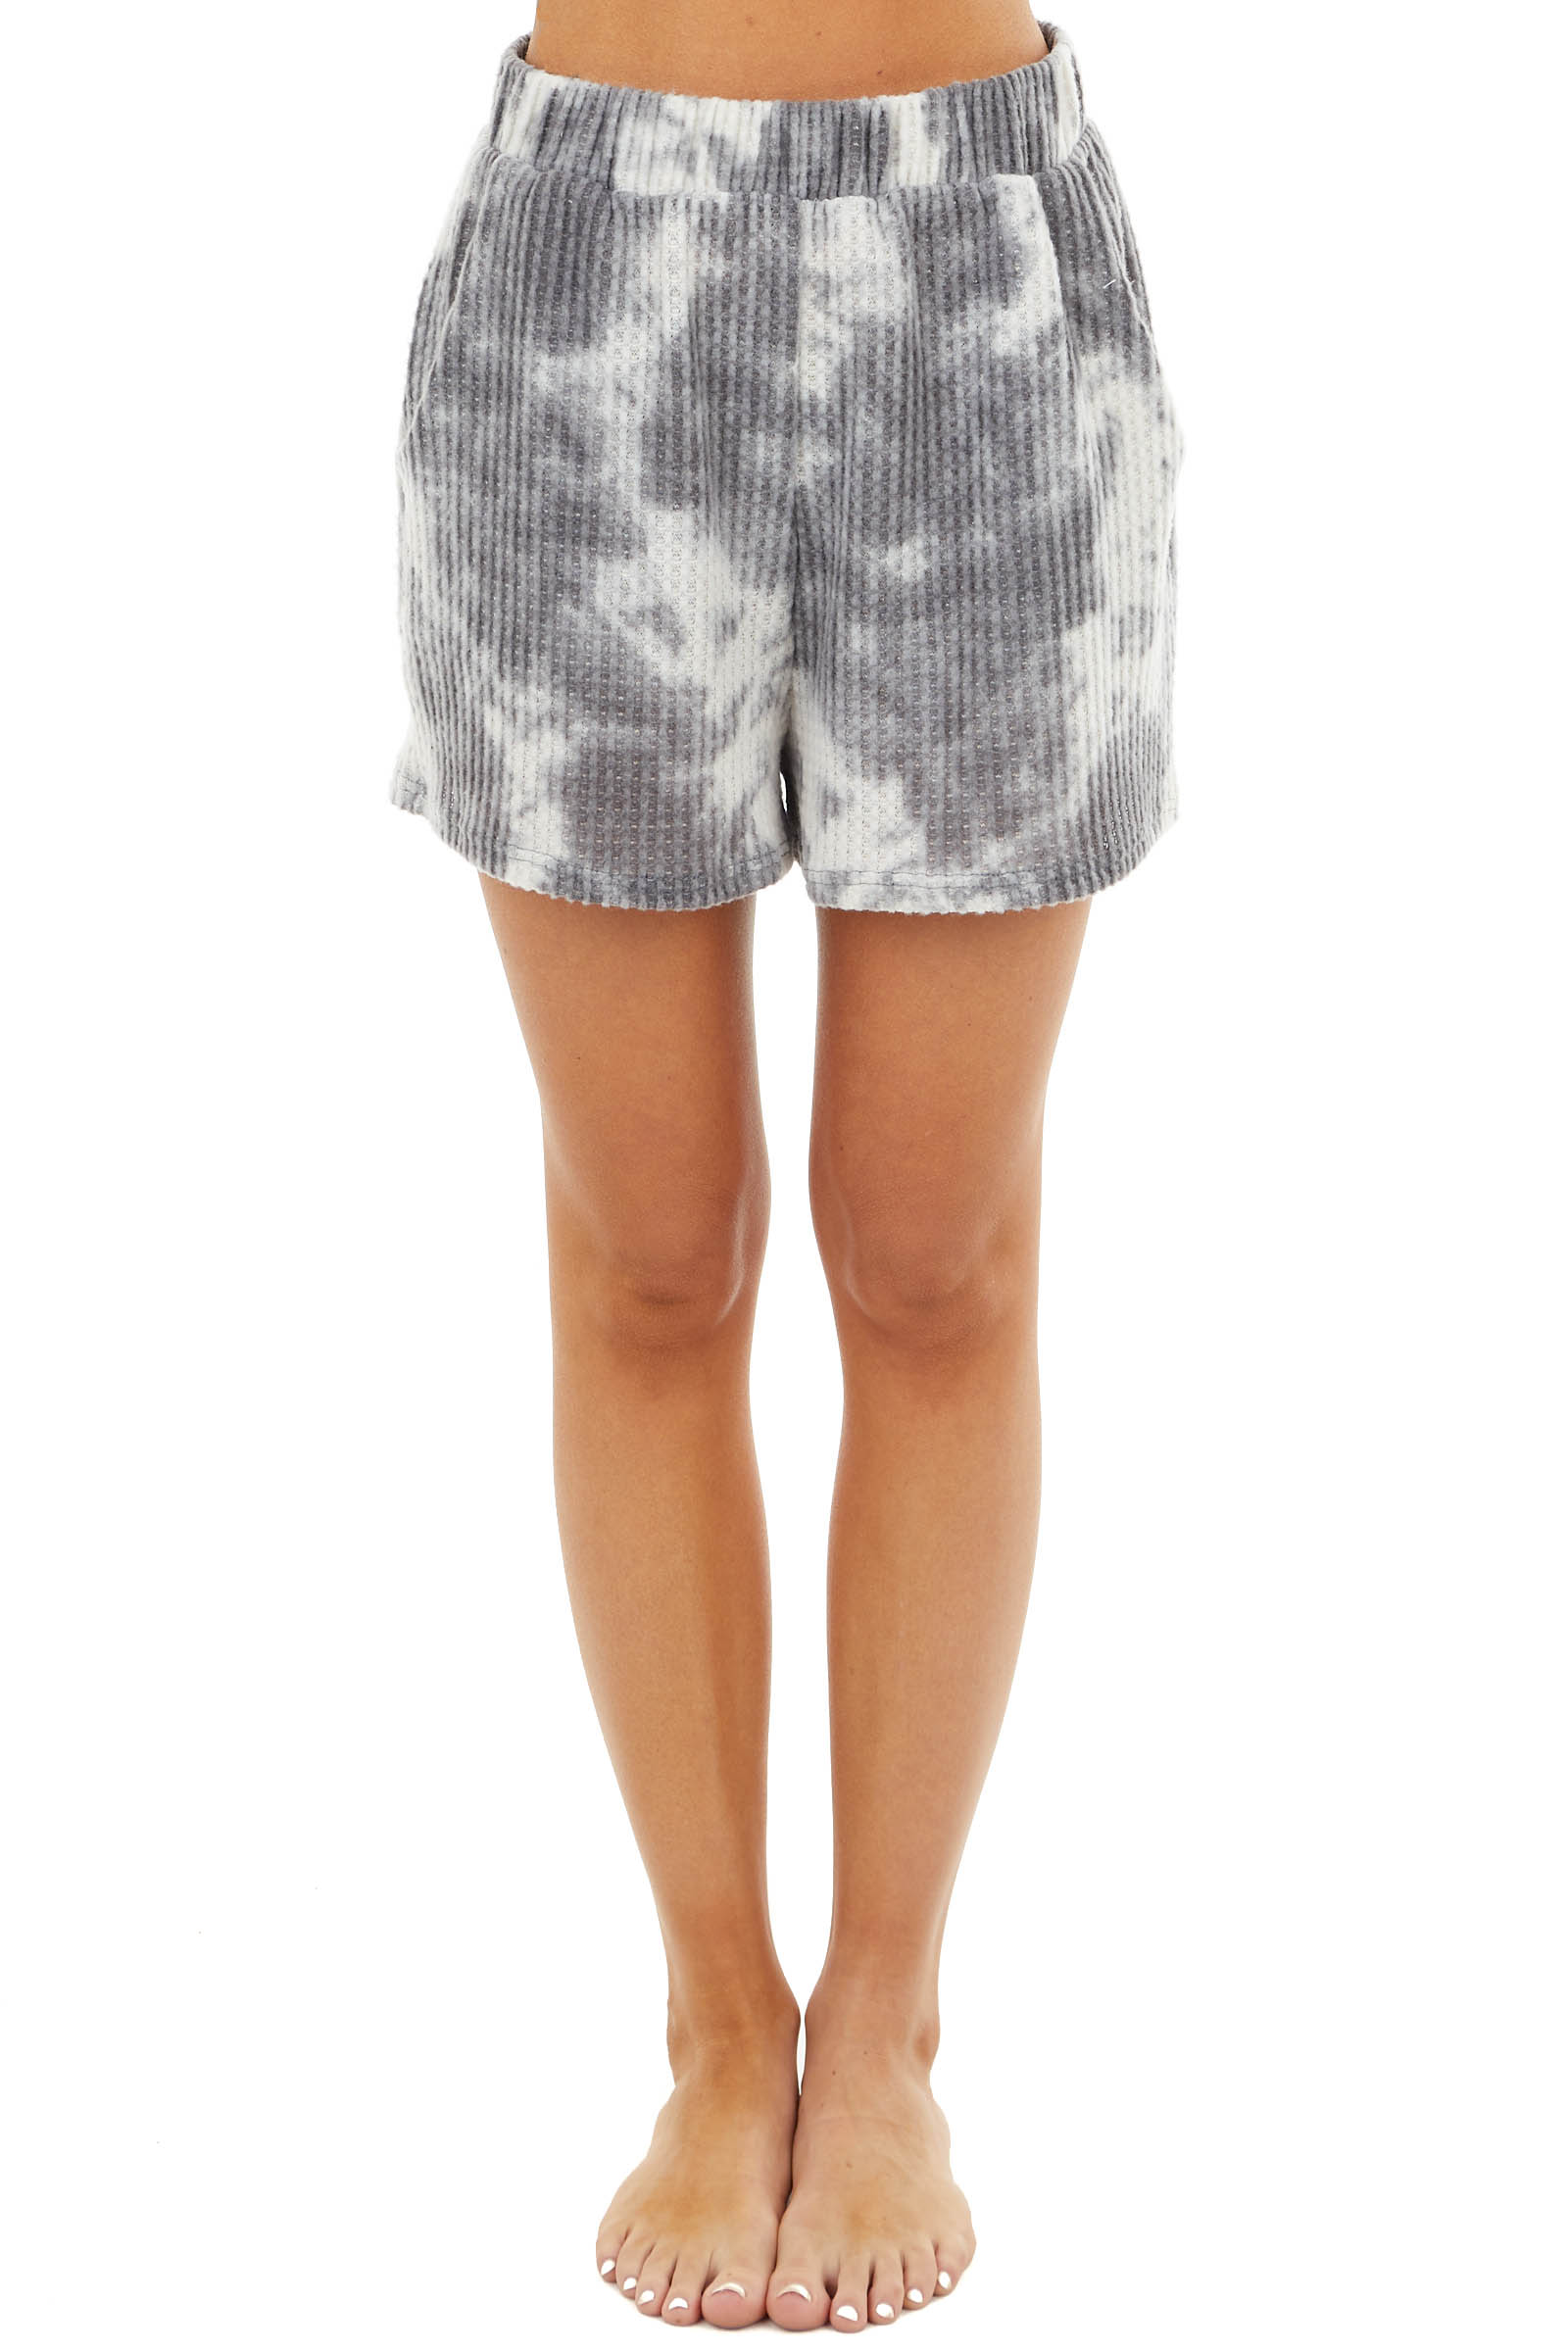 Charcoal Tie Dye Print Waffle Knit Shorts with Pockets